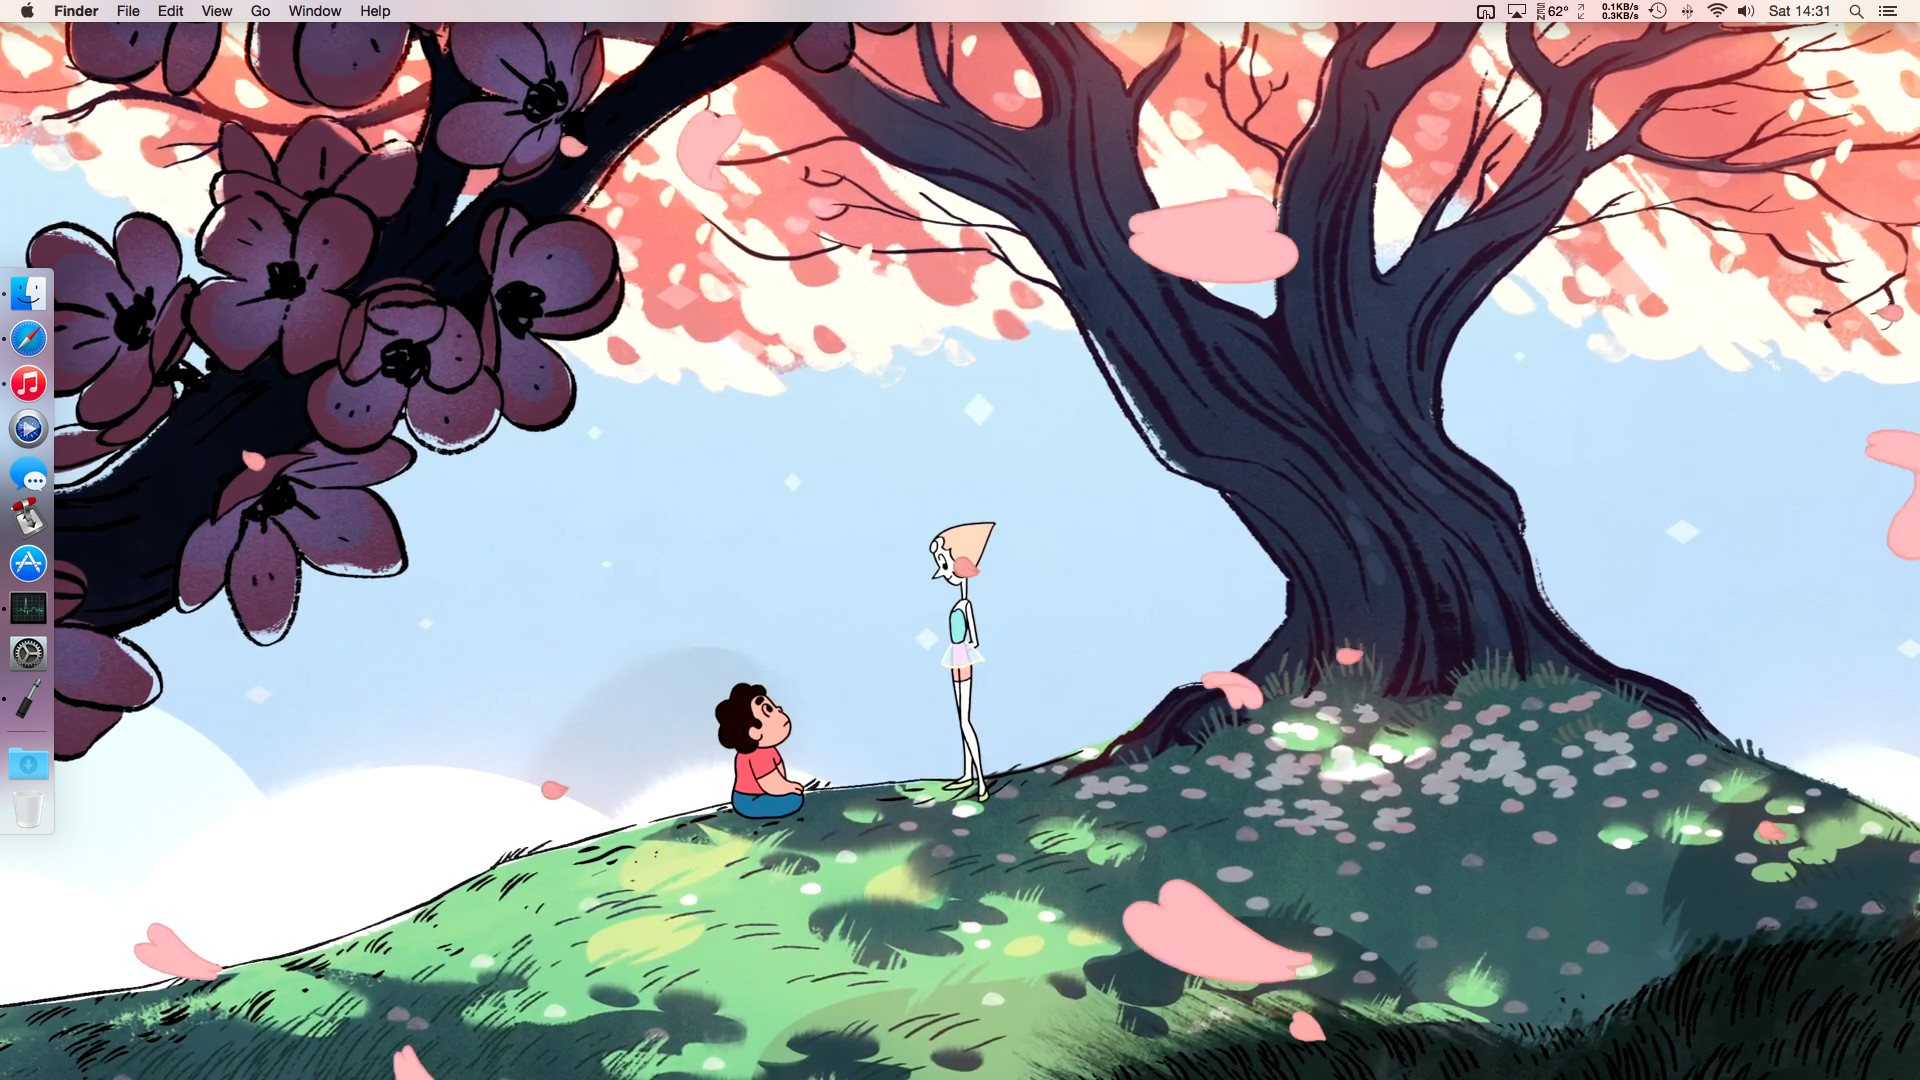 Nowadays I just keep saving prints from 1080p iTunes Steven Universe  episodes, and it looks amazing. I must have 40 wallpapers from it on  rotation.